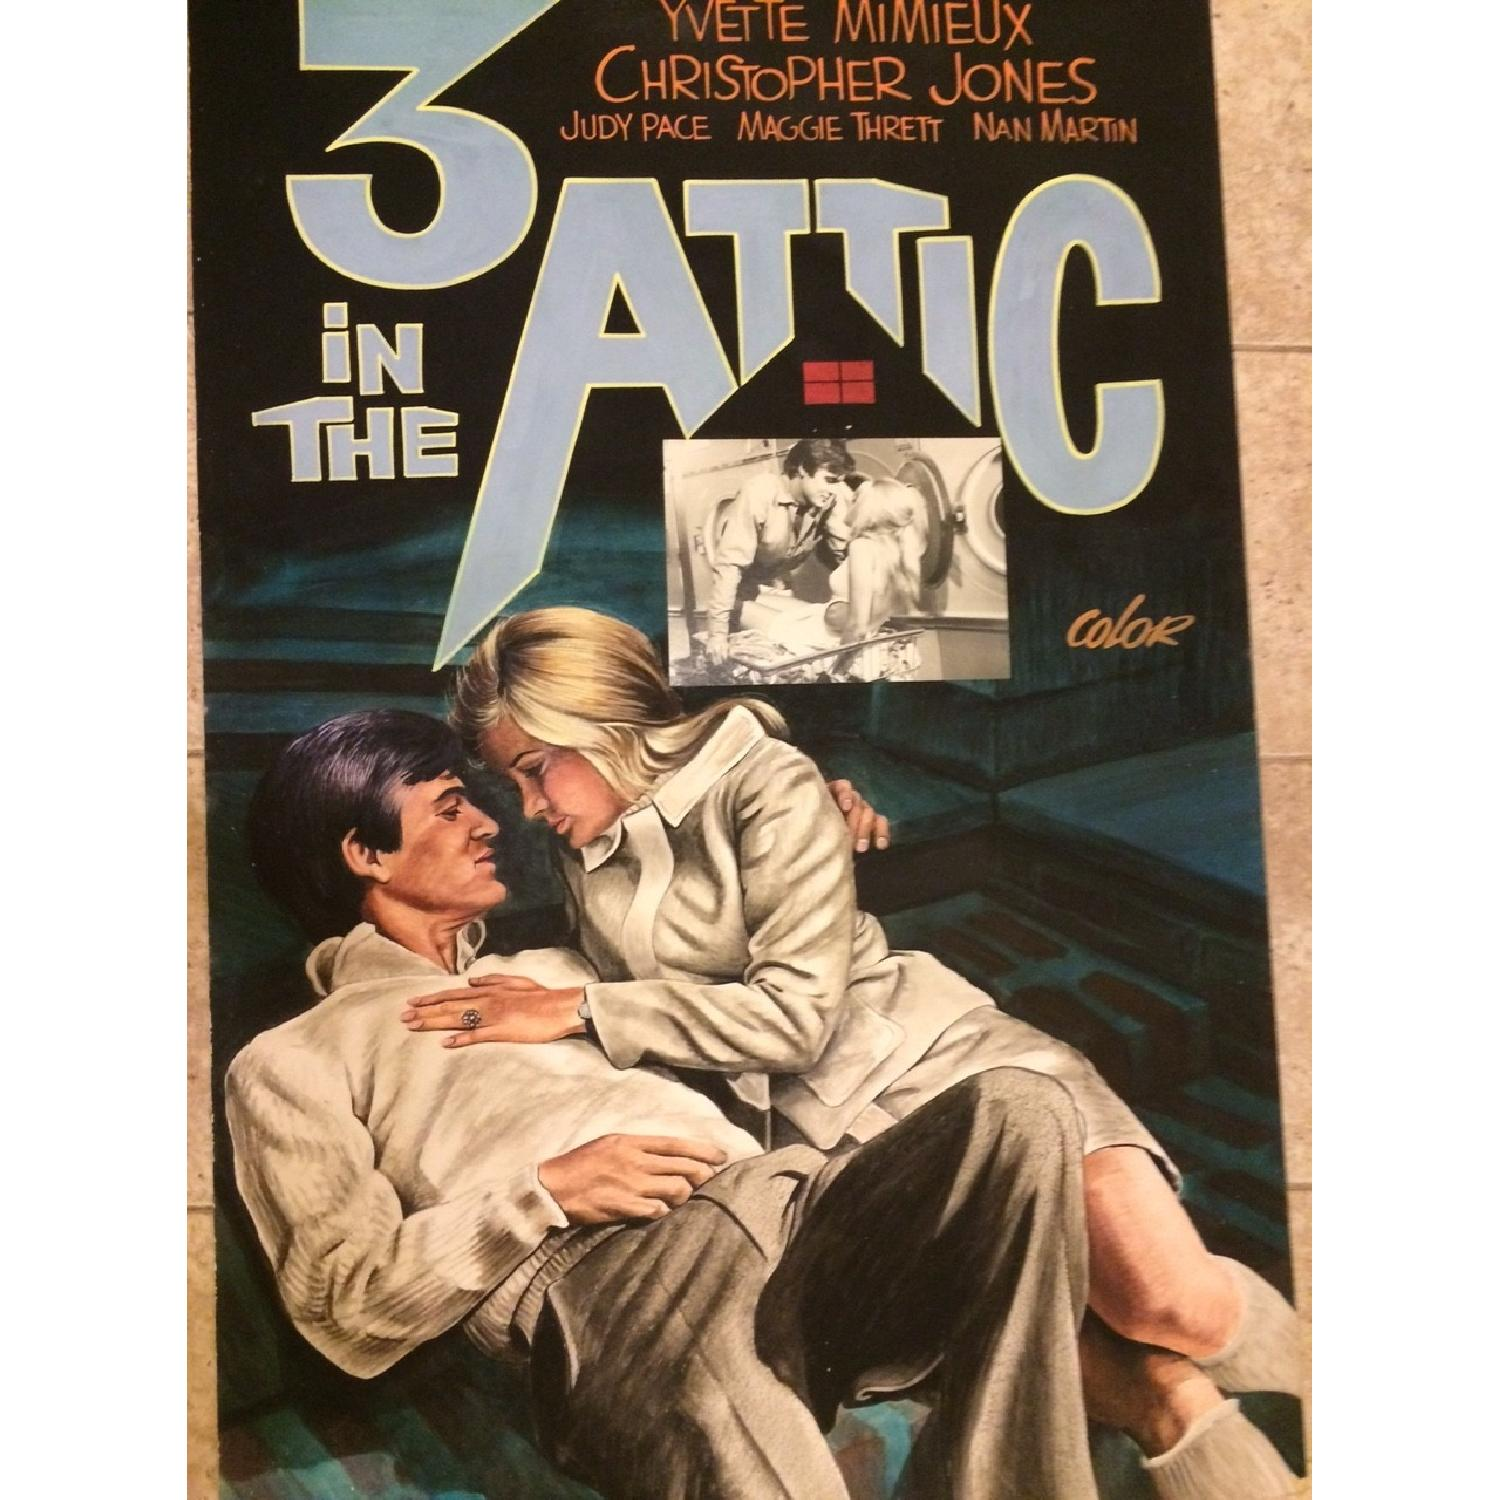 John Lomasney Hand-Painted Movie Poster - Three in the Attic - image-1